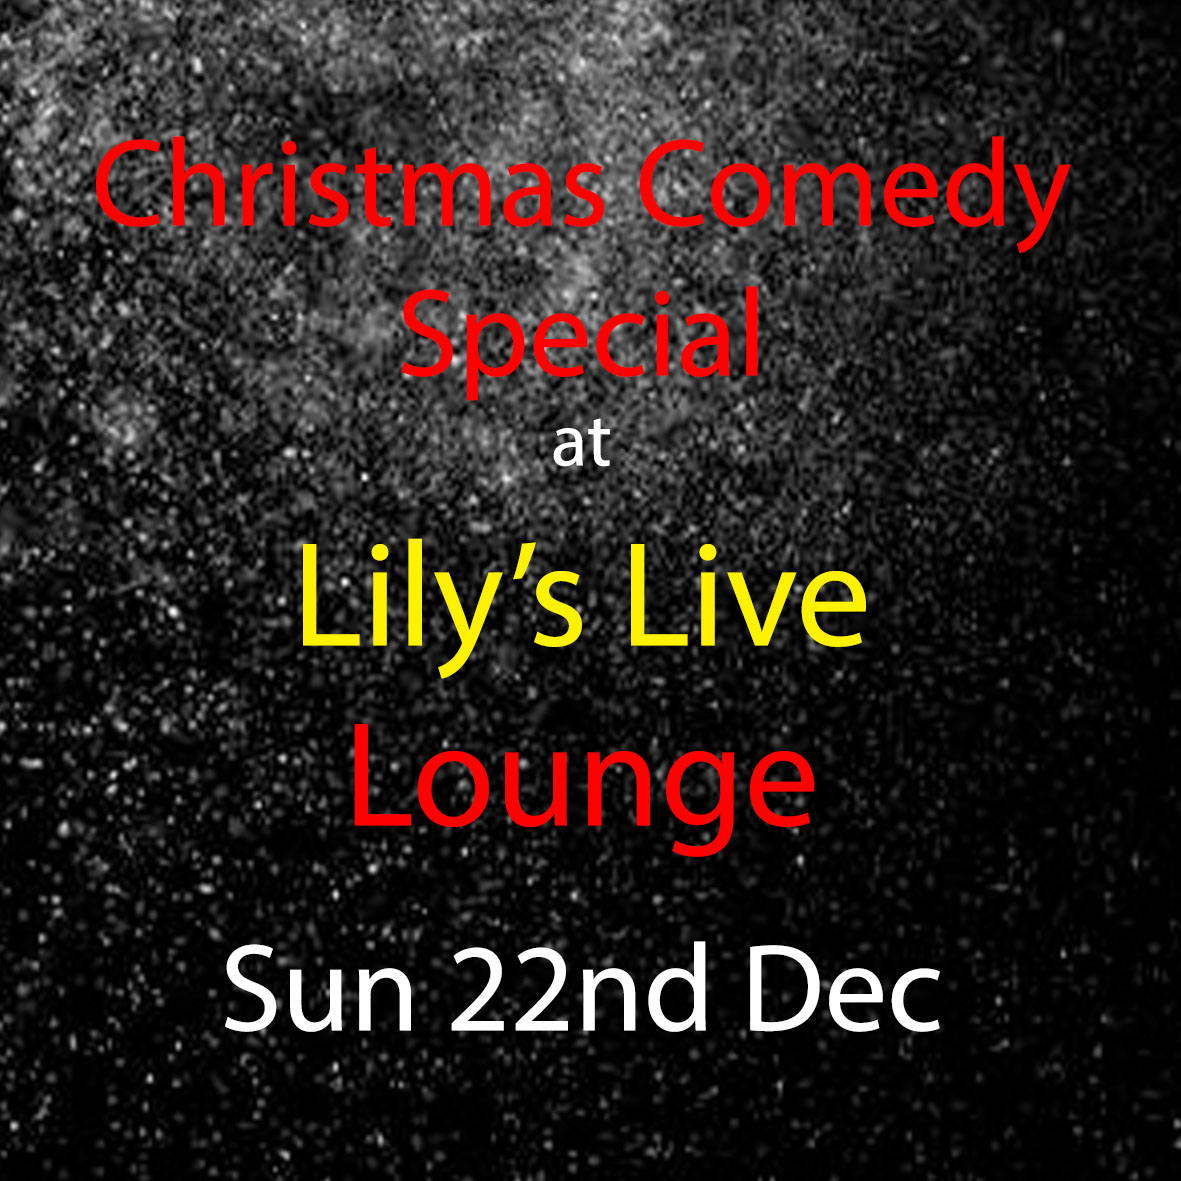 Christmas Comedy Special at Lily's Live Lounge - 22.12.19